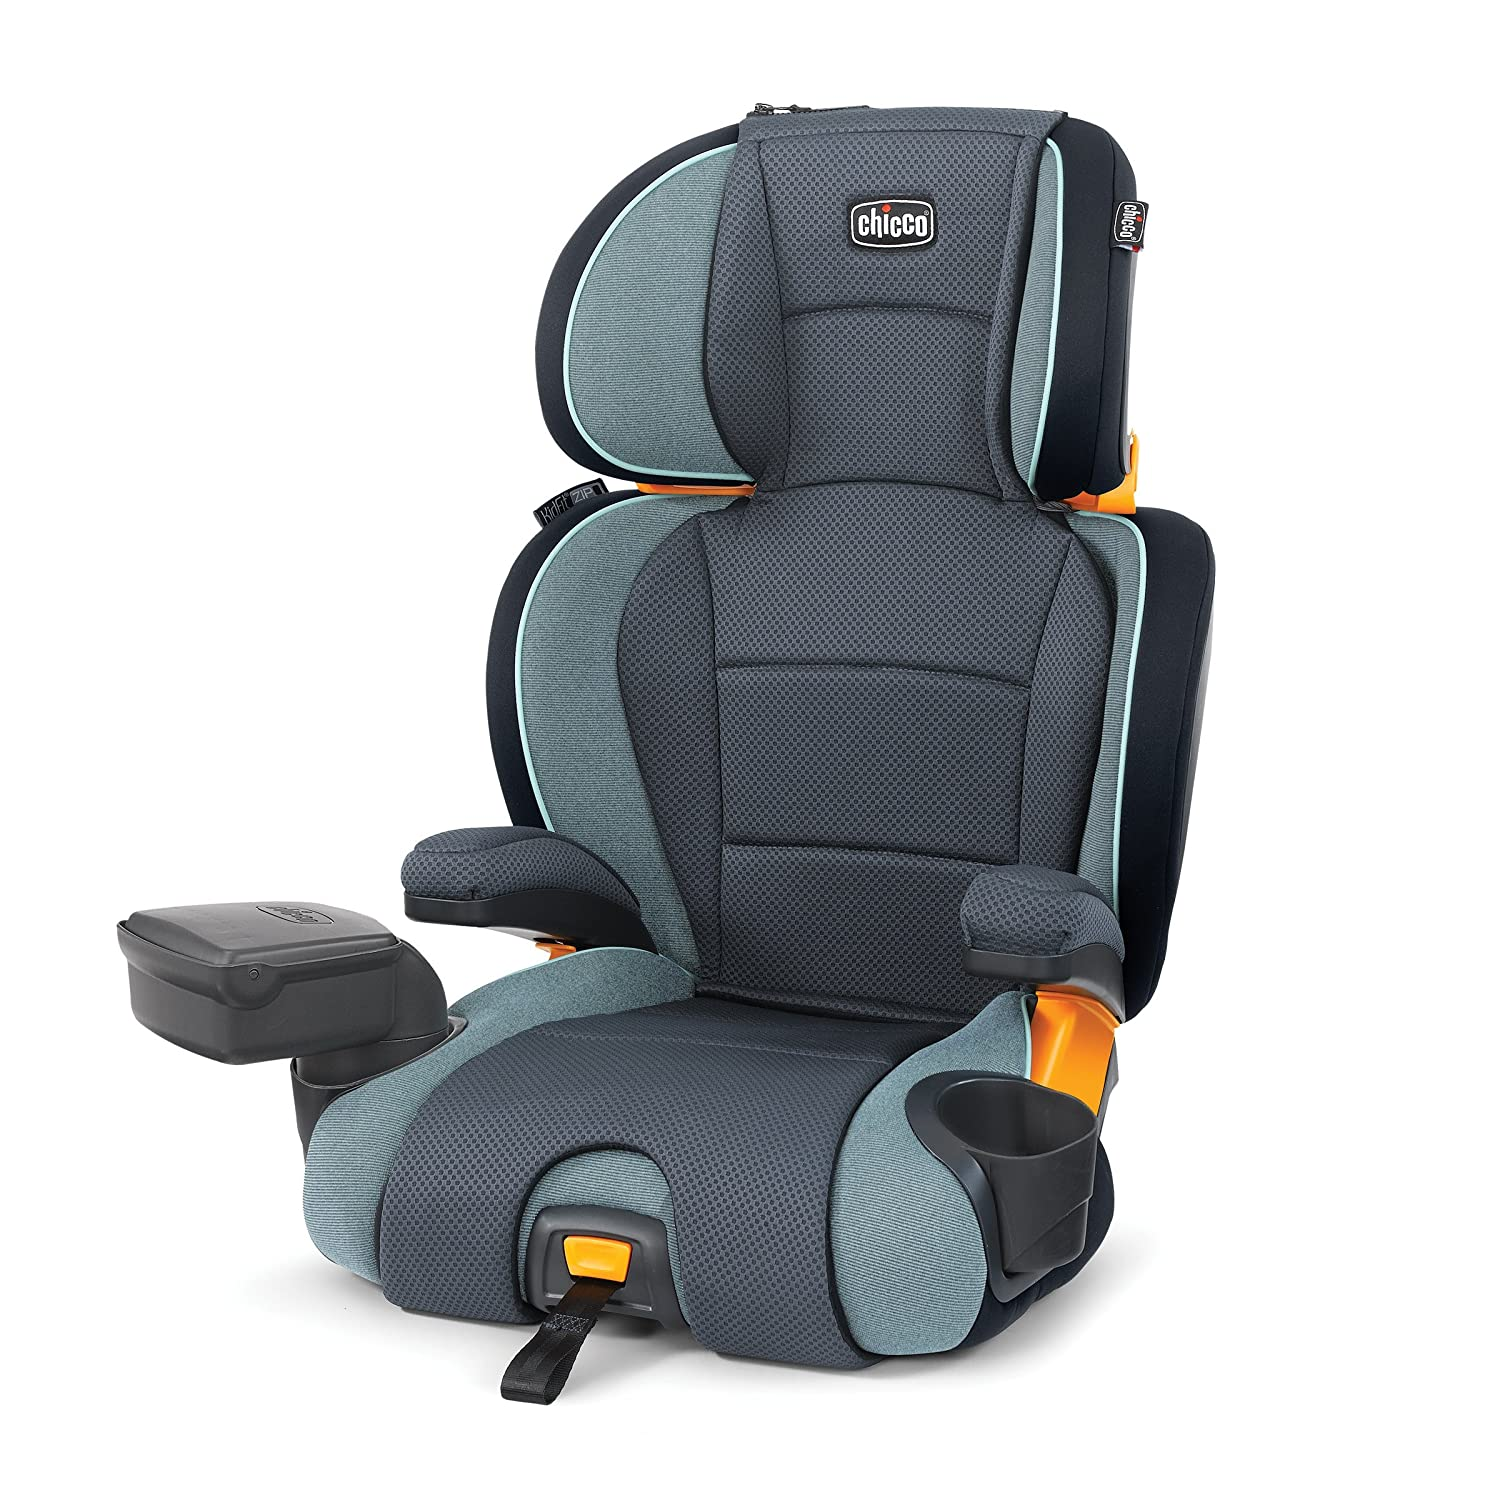 Chicco Kidfit Zip 2-In-1 Belt Positioning Booster Auto Seat, Midnight